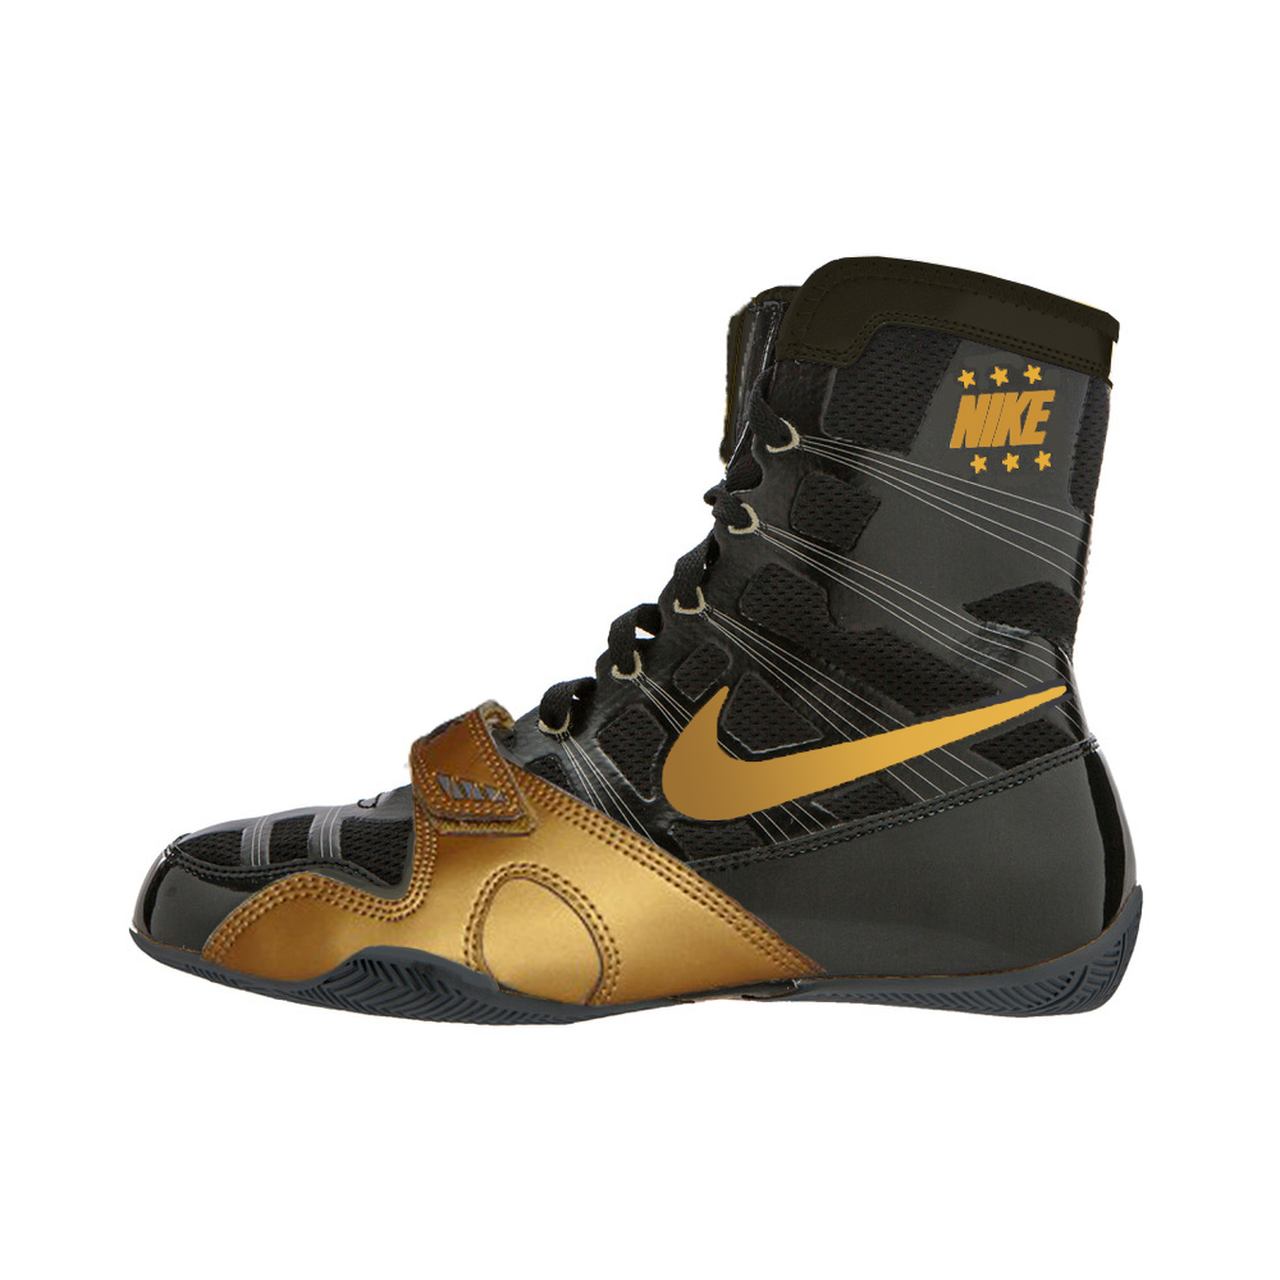 f81fb27372a Nike Hyper KO Limited Edition Boxing Boots Black/Gold